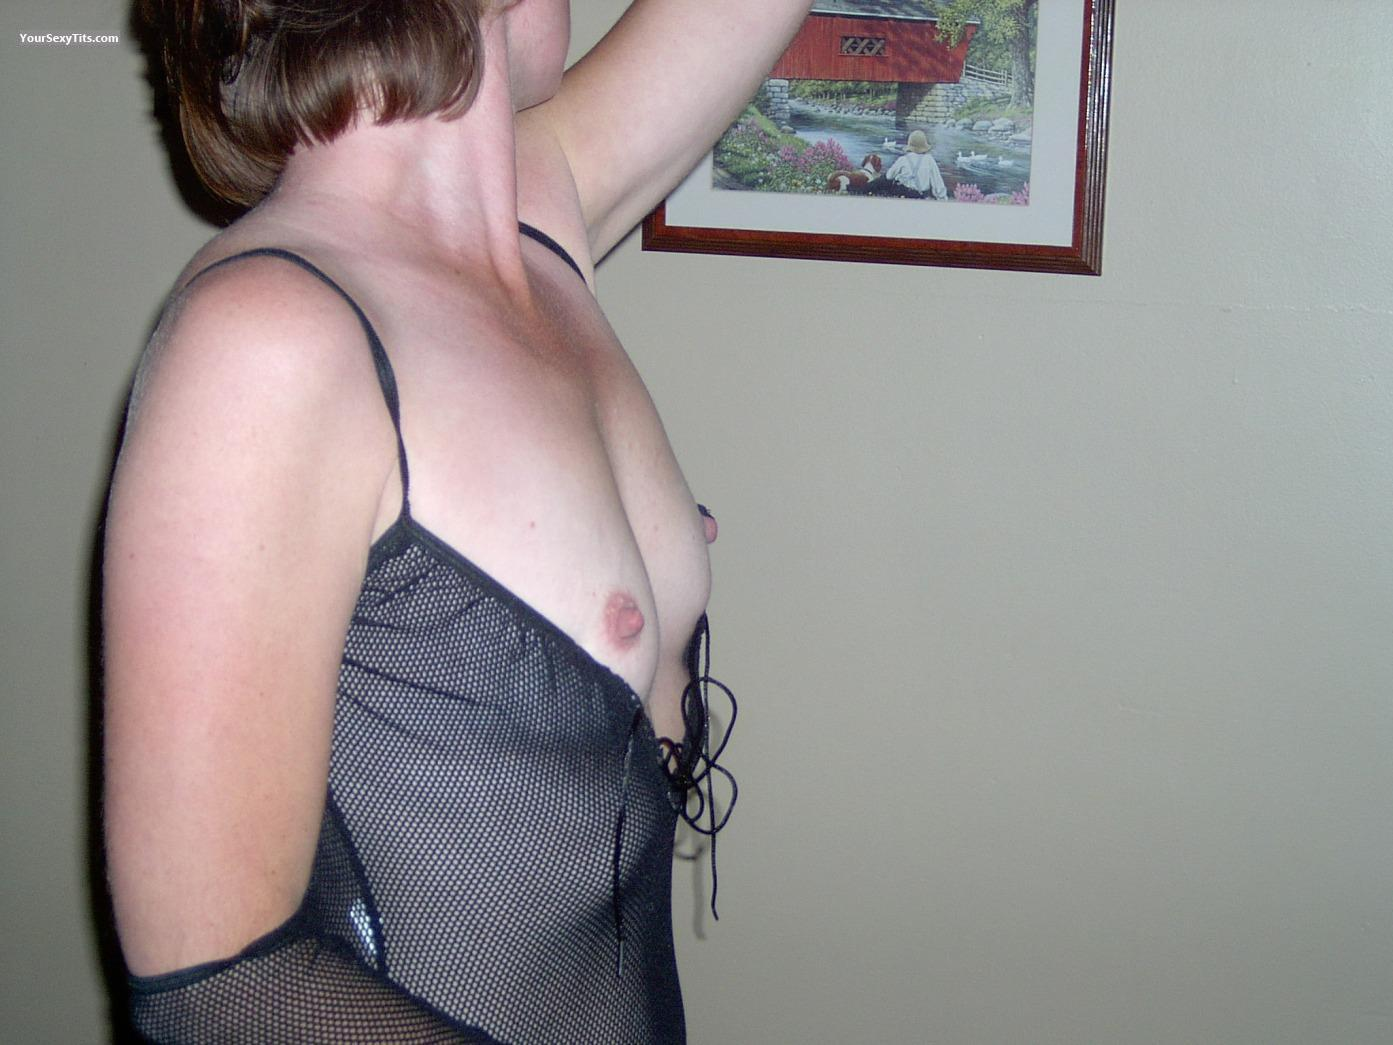 Tit Flash: Very Small Tits - Sunshine from Canada